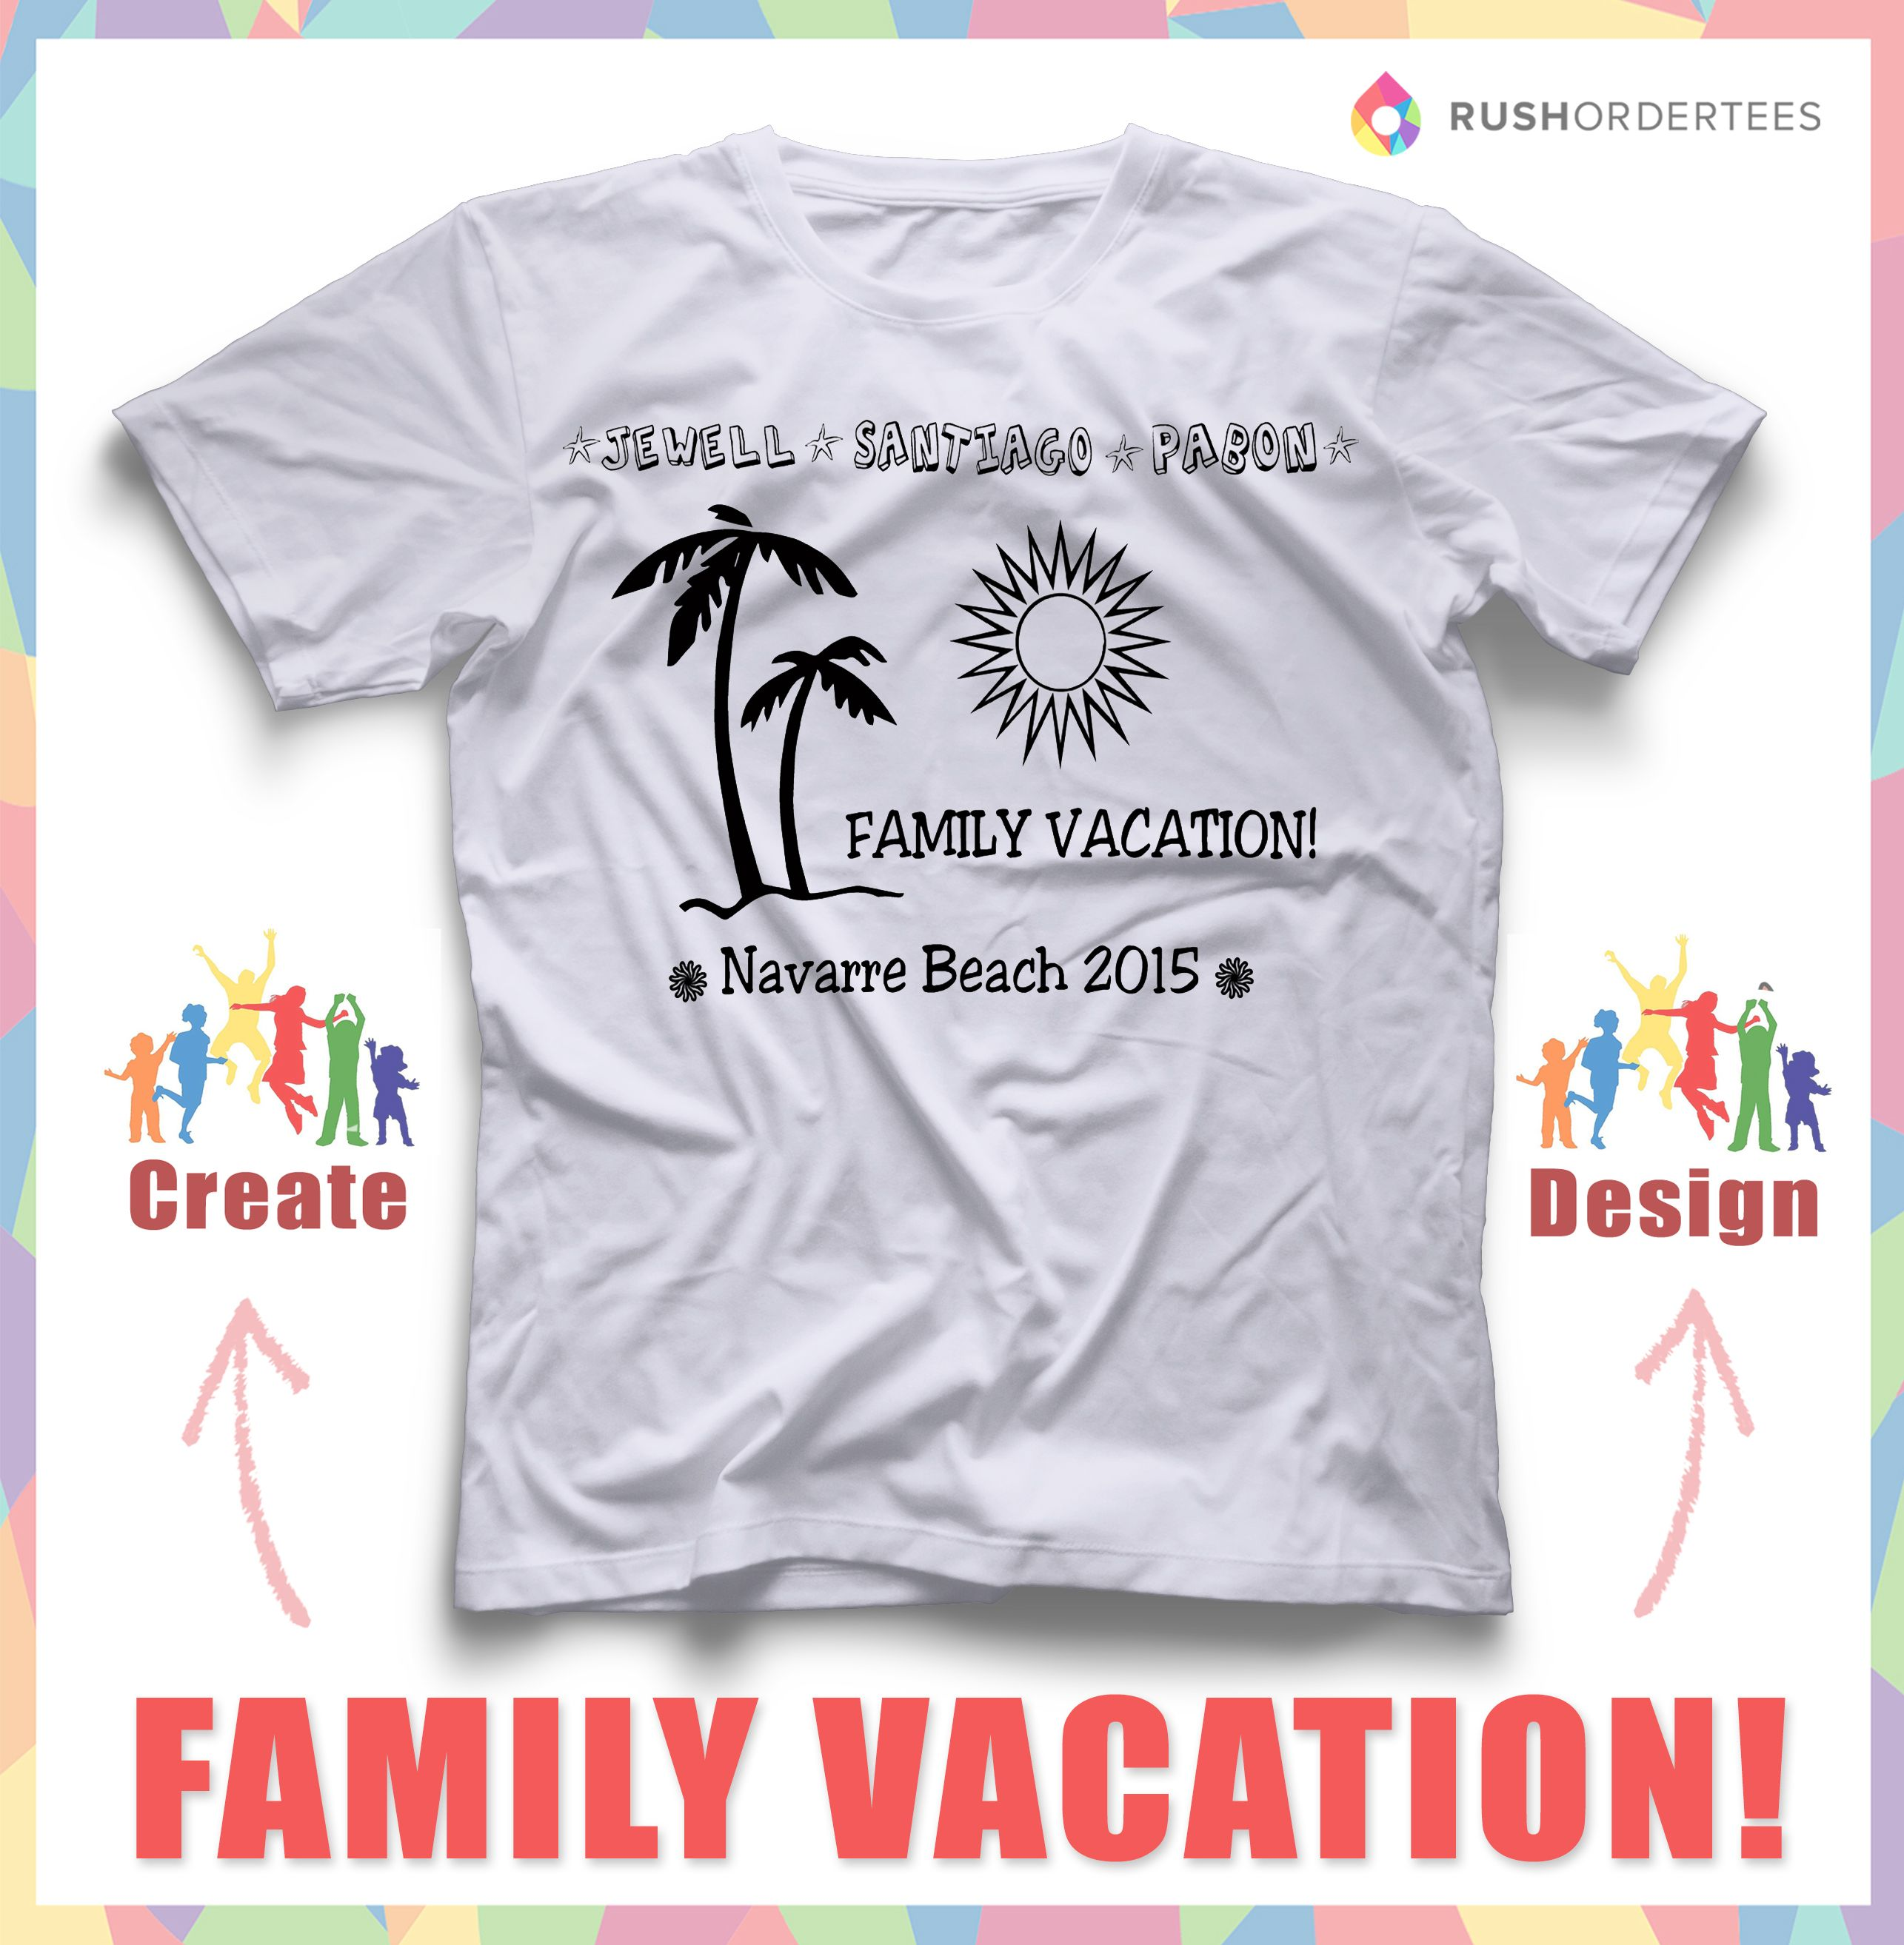 Family Vacation Custom T Shirt Design Idea S Create Your